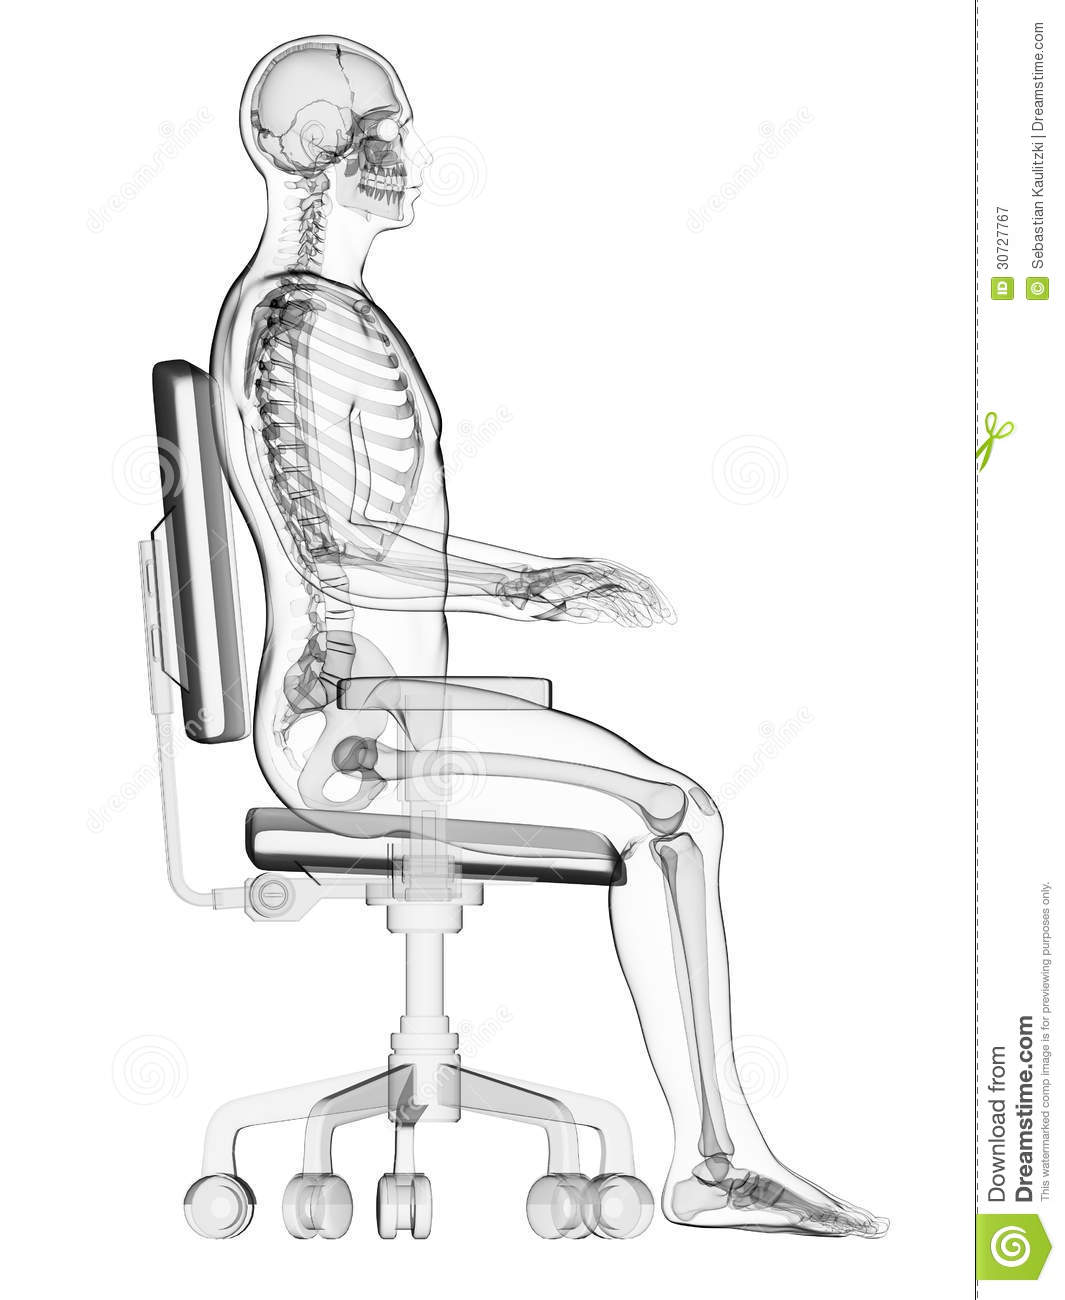 sitting posture on chair in office kid pedicure correct royalty free stock photography